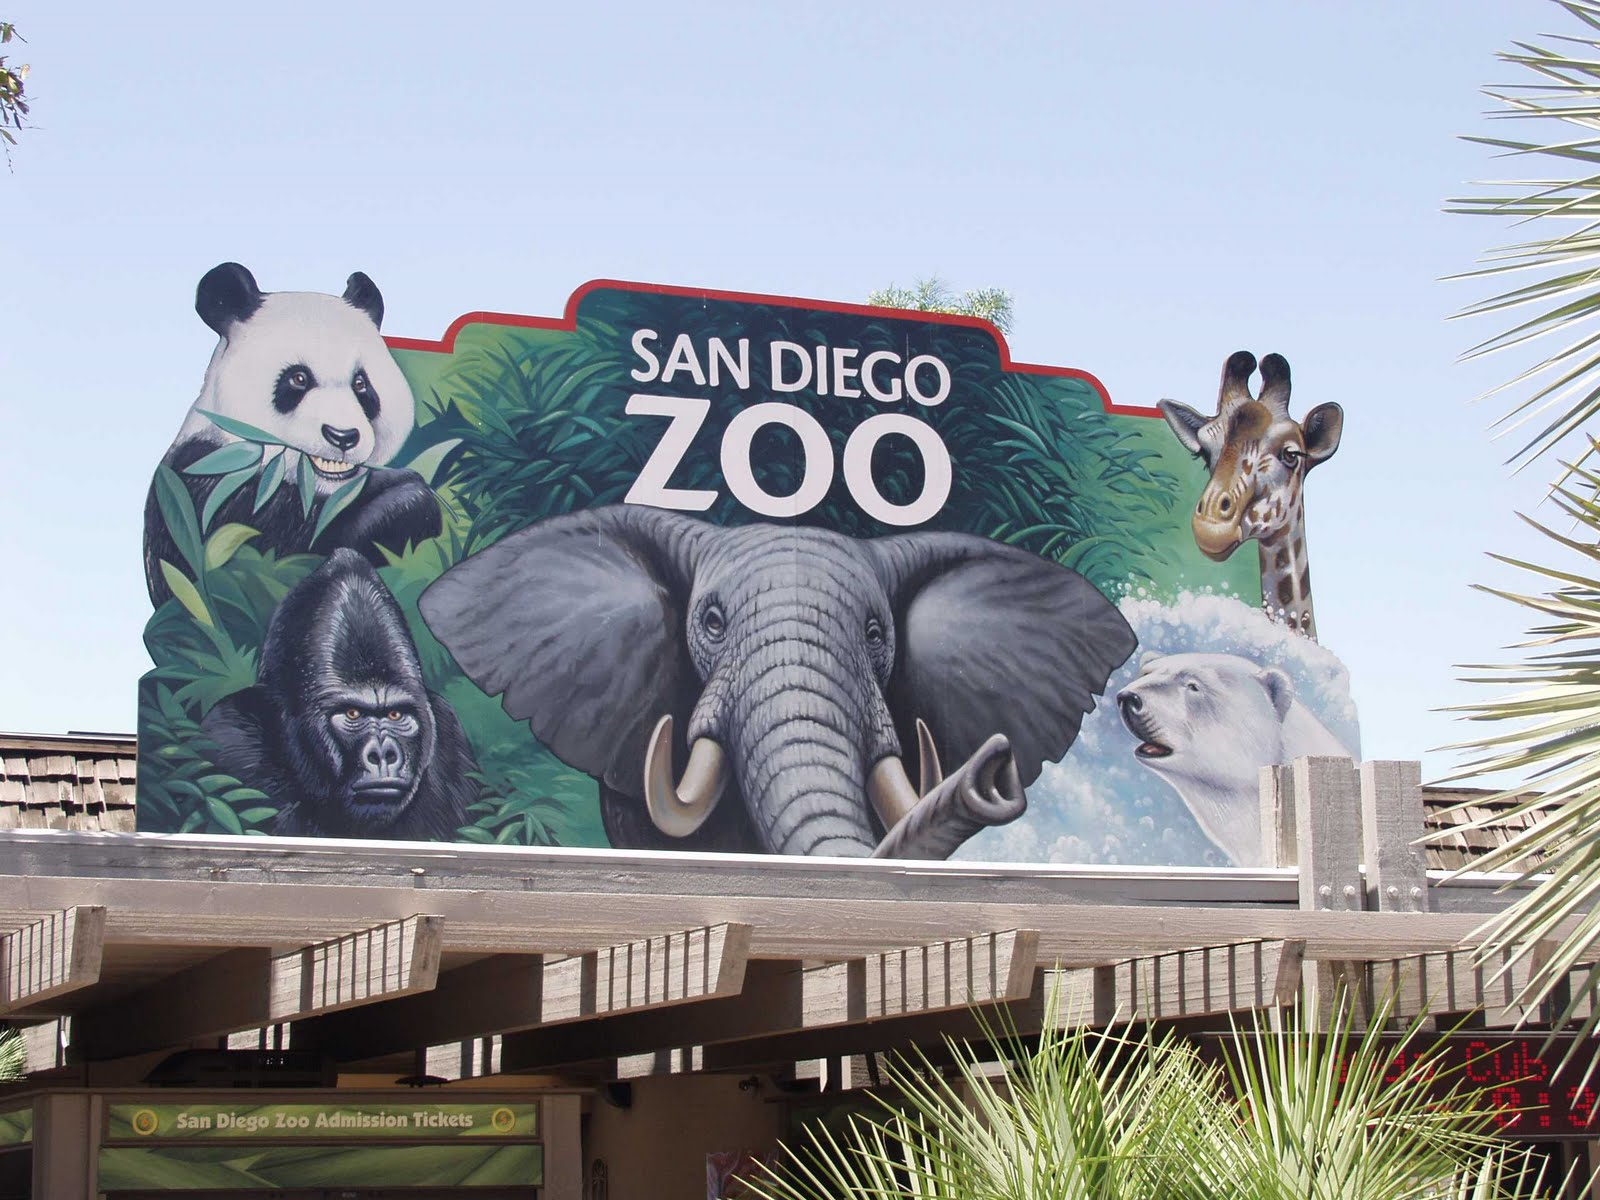 The San Diego Zoo and San Diego Zoo Safari Park offer a complimentary one-day pass to the Zoo and an Africa Tram Safari at the Safari Park throughout the year for active duty military, cadets of military academies and reserves with active orders. Individuals must show a valid, active military ID; the program also includes U.S. cadets who do not have